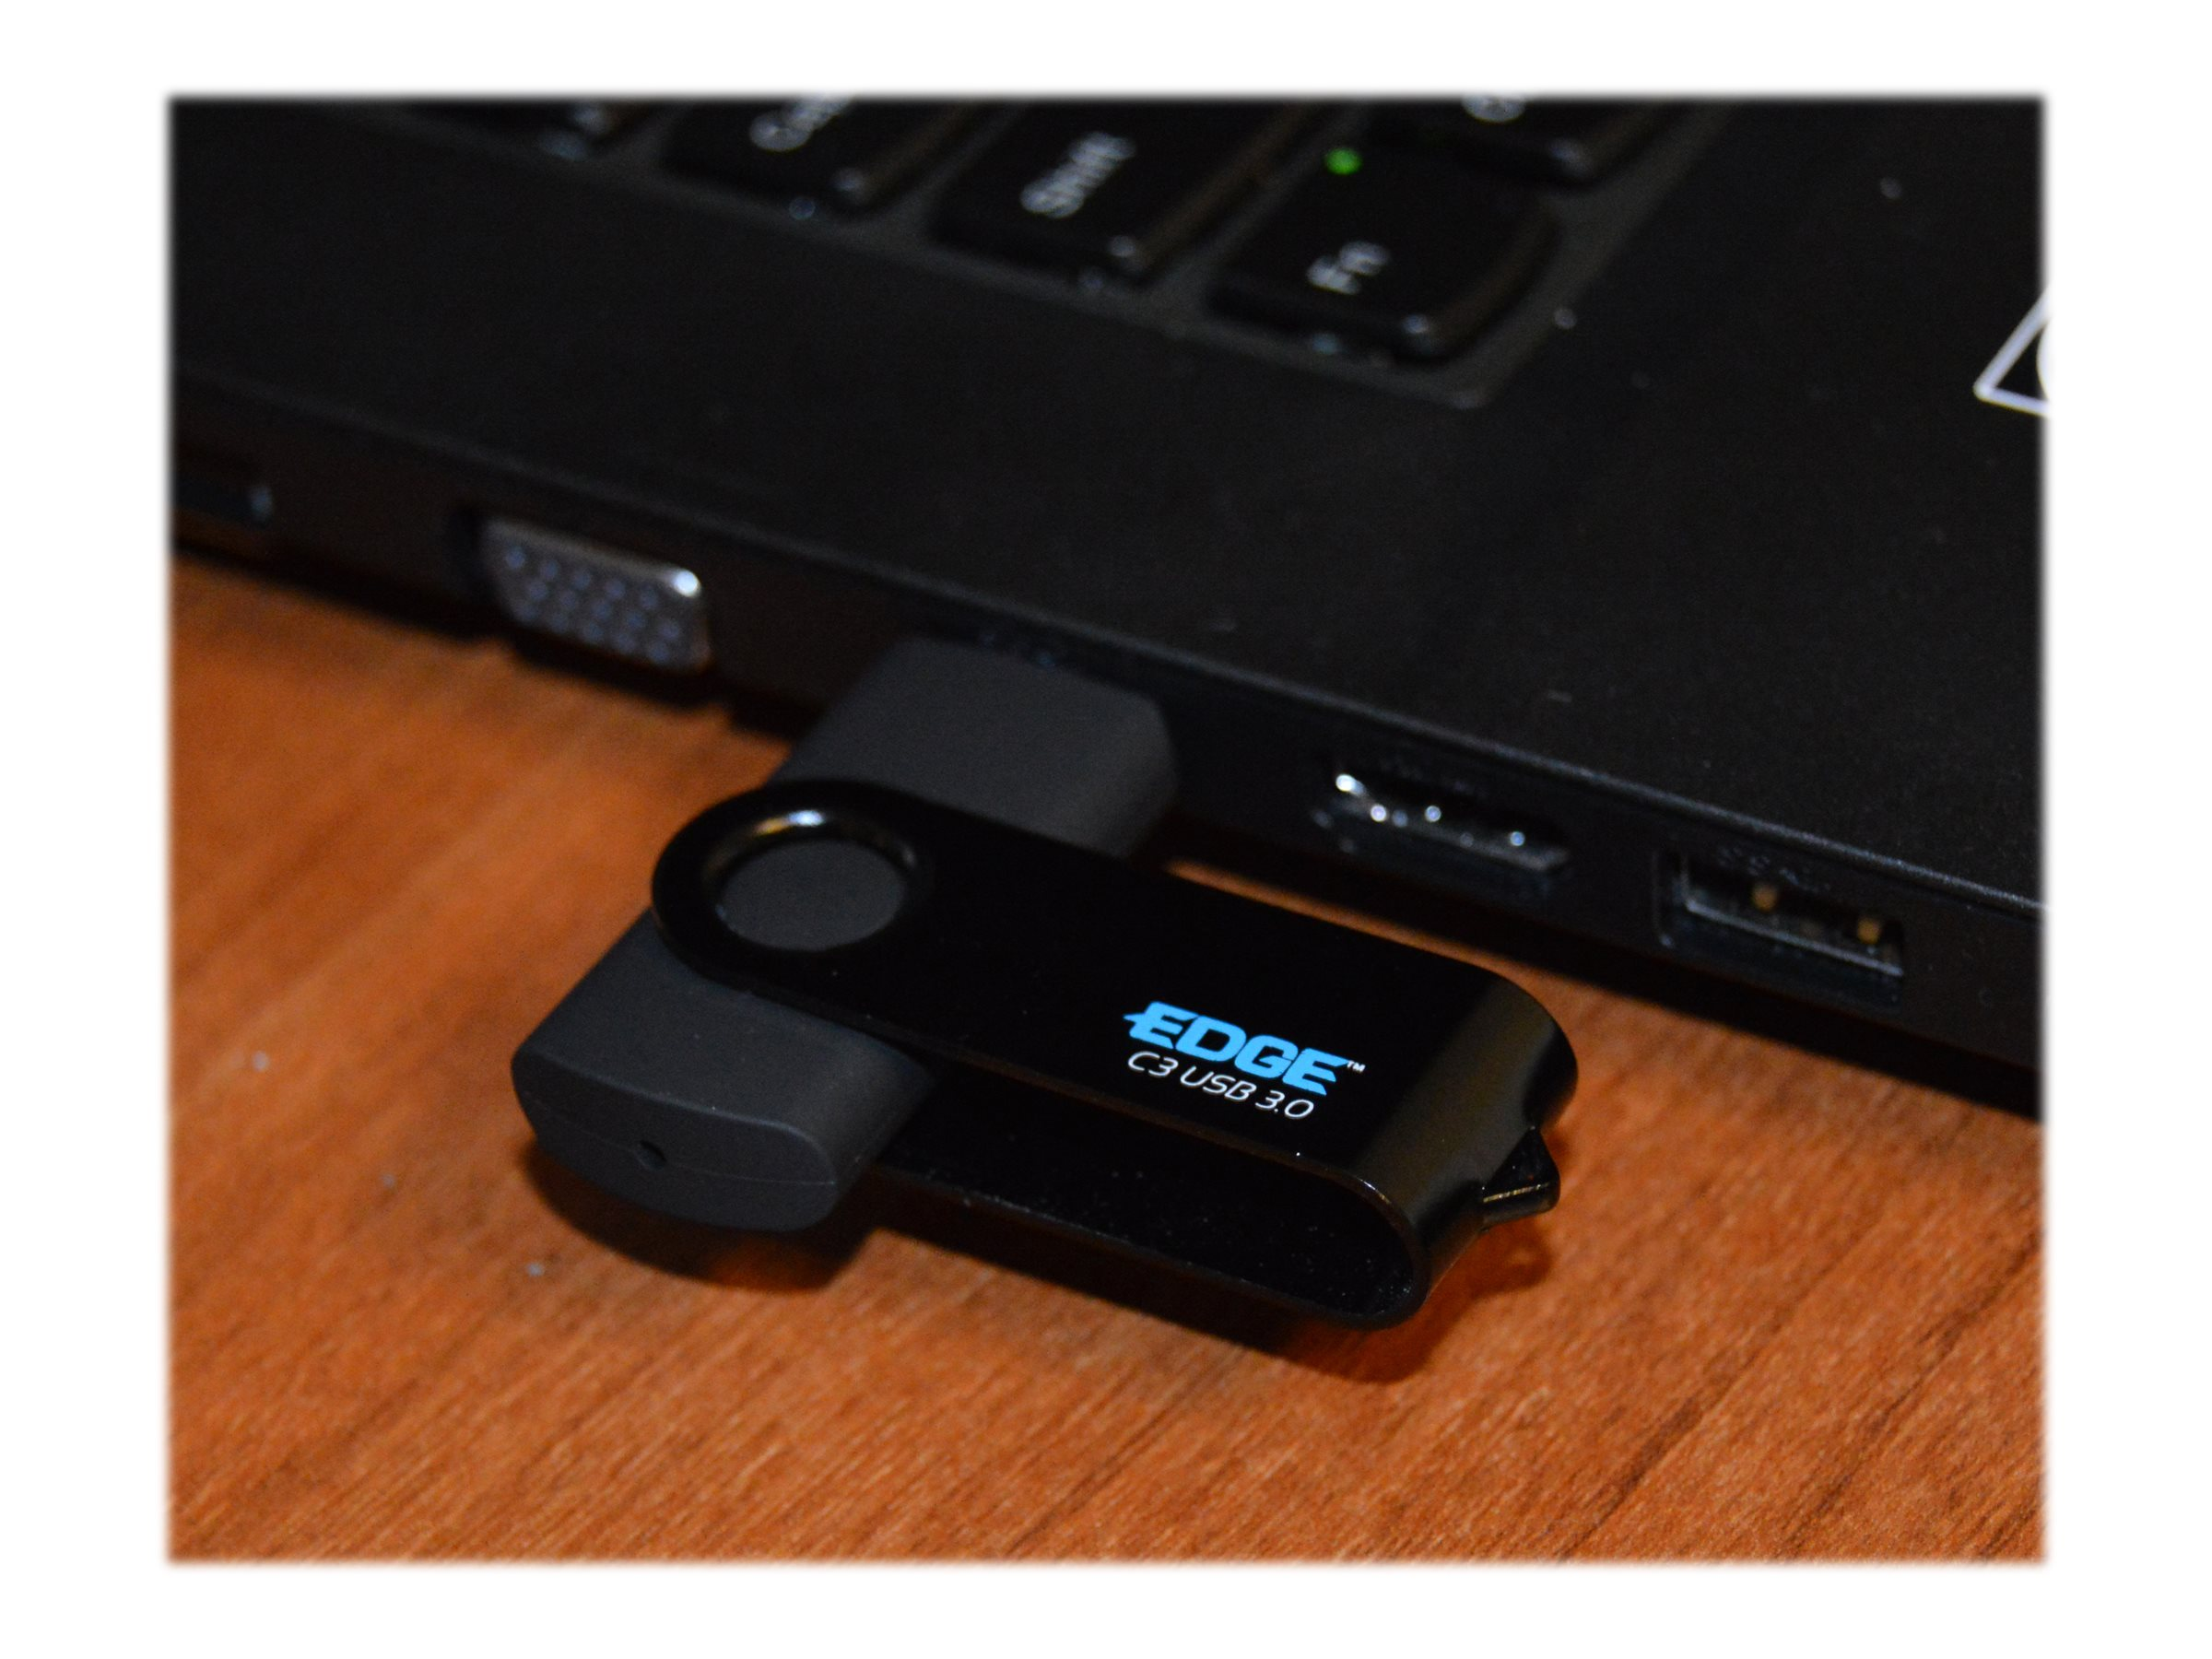 Edge 32GB C3 Secure USB 3.0 Flash Drive